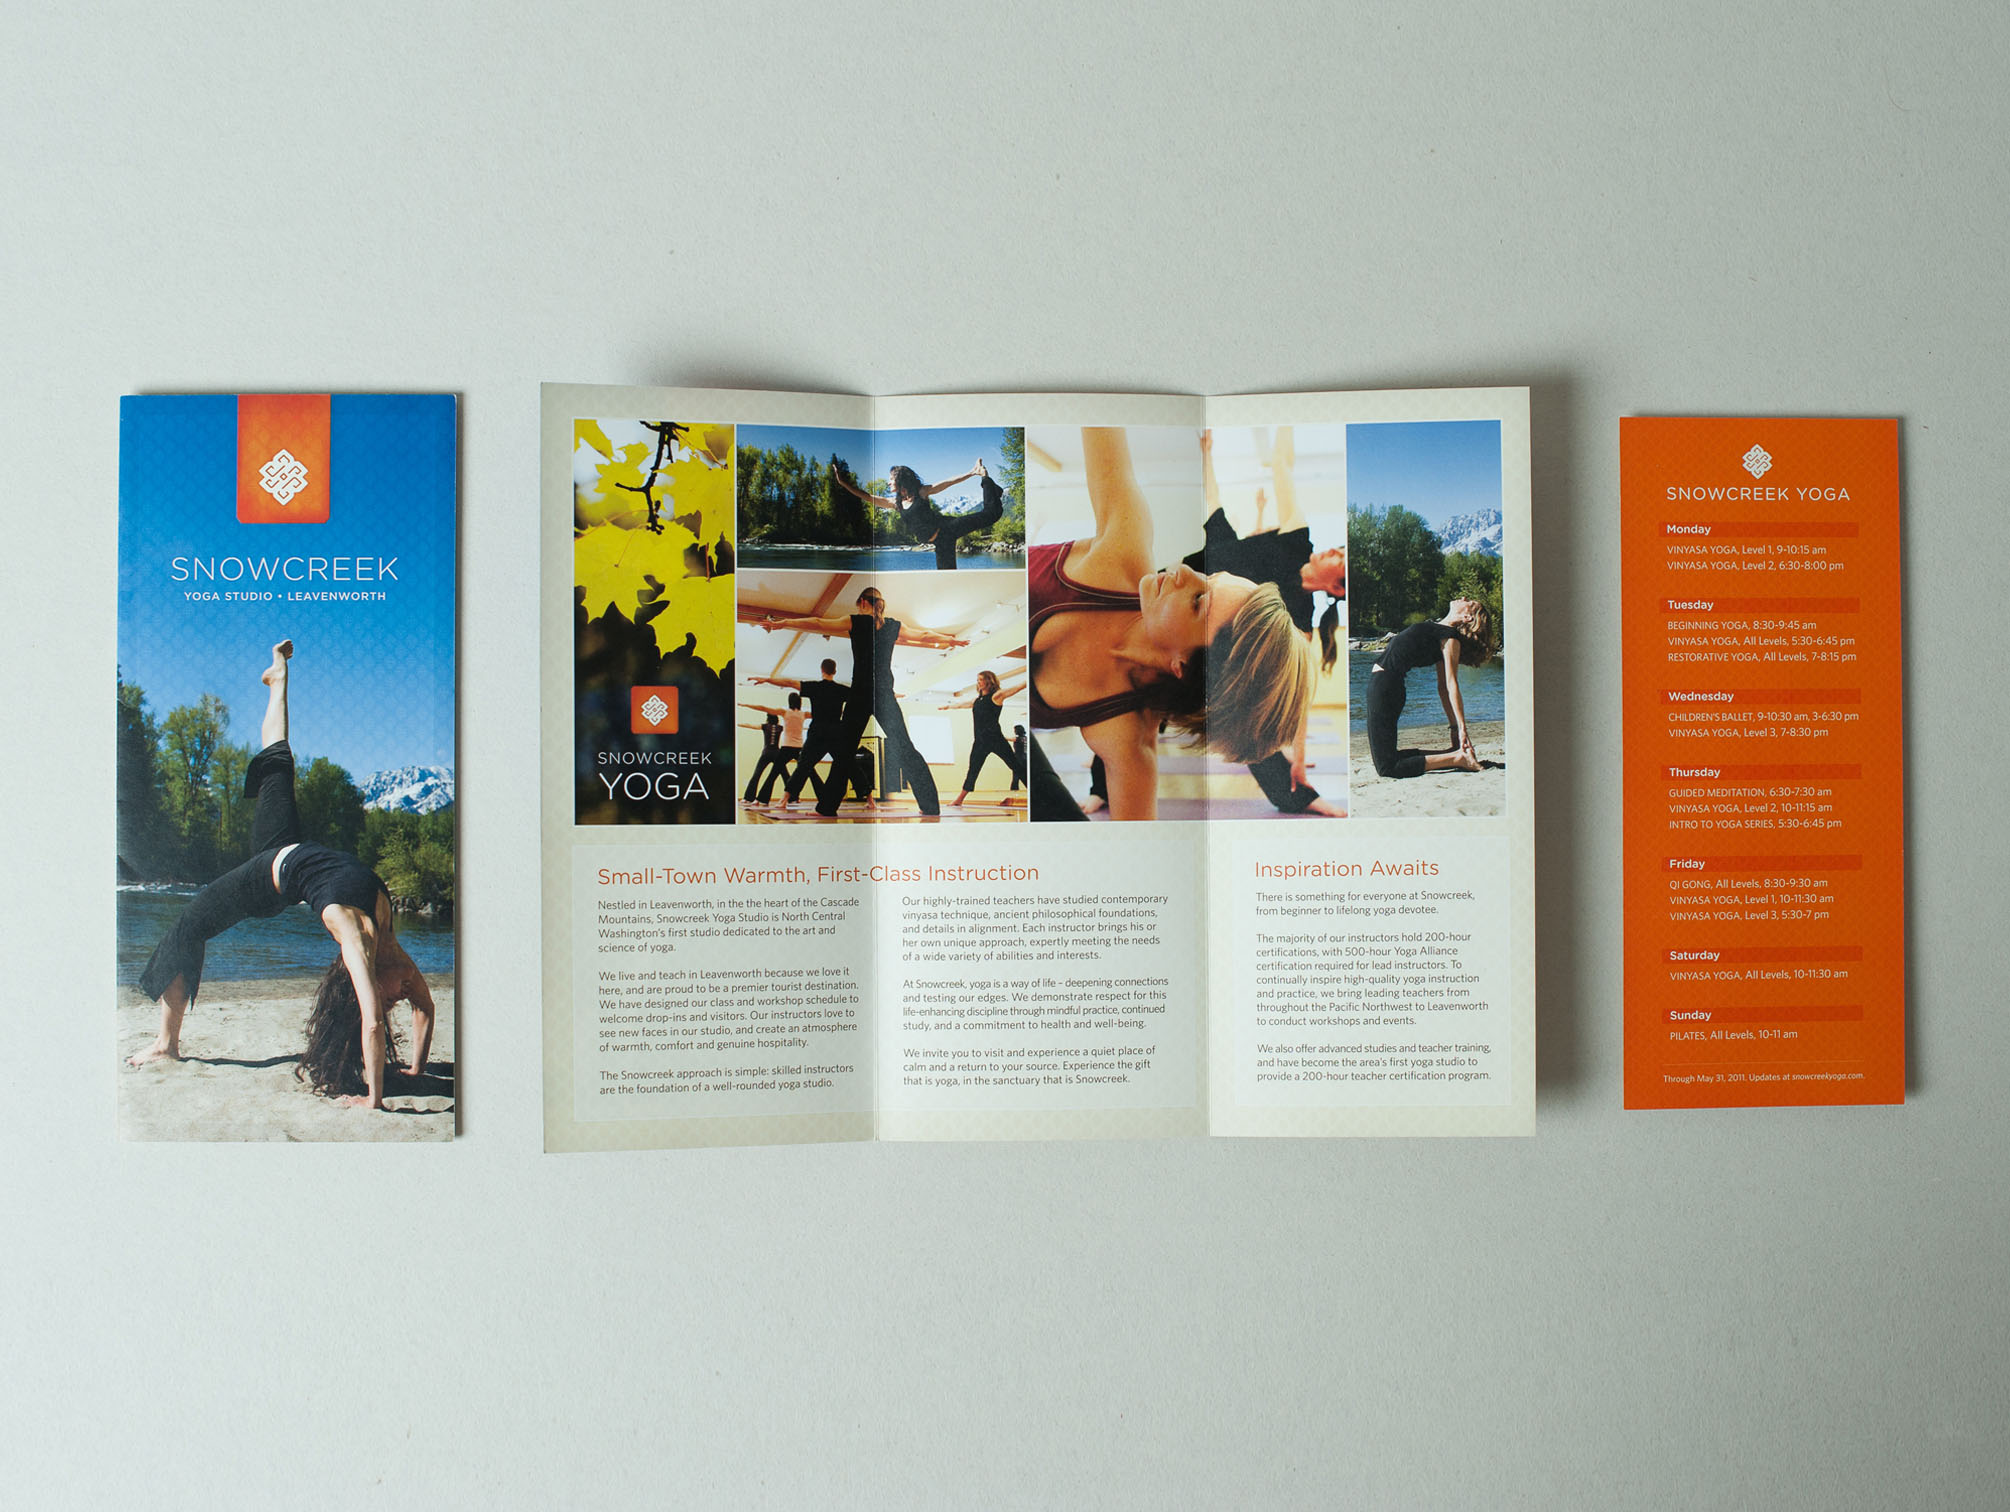 Branding, design, and copywriting. Interior brochure content follows:   —   Small-Town Warmth, First-Class Instruction   Nestled in Leavenworth, in the the heart of the Cascade Mountains, Snowcreek Yoga Studio is North Central Washington's first studio dedicated to the art andscience of yoga.  We live and teach in Leavenworth because we love it here, and are proud to be a premier tourist destination.We have designed our class and workshop schedule to welcome drop-ins and visitors. Our instructors love to see new faces in our studio, and create an atmosphere of warmth, comfort and genuine hospitality.  The Snowcreek approach is simple: skilled instructors are the foundation of a well-rounded yoga studio.  Our highly-trained teachers have studied contemporary vinyasa technique, ancient philosophical foundations, and details in alignment. Each instructor brings his or her own unique approach, expertly meeting the needs of a wide variety of abilities and interests.  At Snowcreek, yoga is a way of life – deepening connections and testing our edges. We demonstrate respect for this life-enhancing discipline through mindful practice, continued study, and a commitment to health and well-being.  We invite you to visit and experience a quiet place of calm and a return to your source. Experience the gift that is yoga, in the sanctuary that is Snowcreek.  —   Inspiration Awaits   There is something for everyone at Snowcreek, from beginner to lifelong yoga devotee.  The majority of our instructors hold 200-hour certifications, with 500-hour Yoga Alliancecertification required for lead instructors. To continually inspire high-quality yoga instruction and practice, we bring leading teachers from throughout the Pacific Northwest to Leavenworth to conduct workshops and events.  We also offer advanced studies and teacher training, and have become the area's first yoga studio to provide a 200-hour teacher certification program.